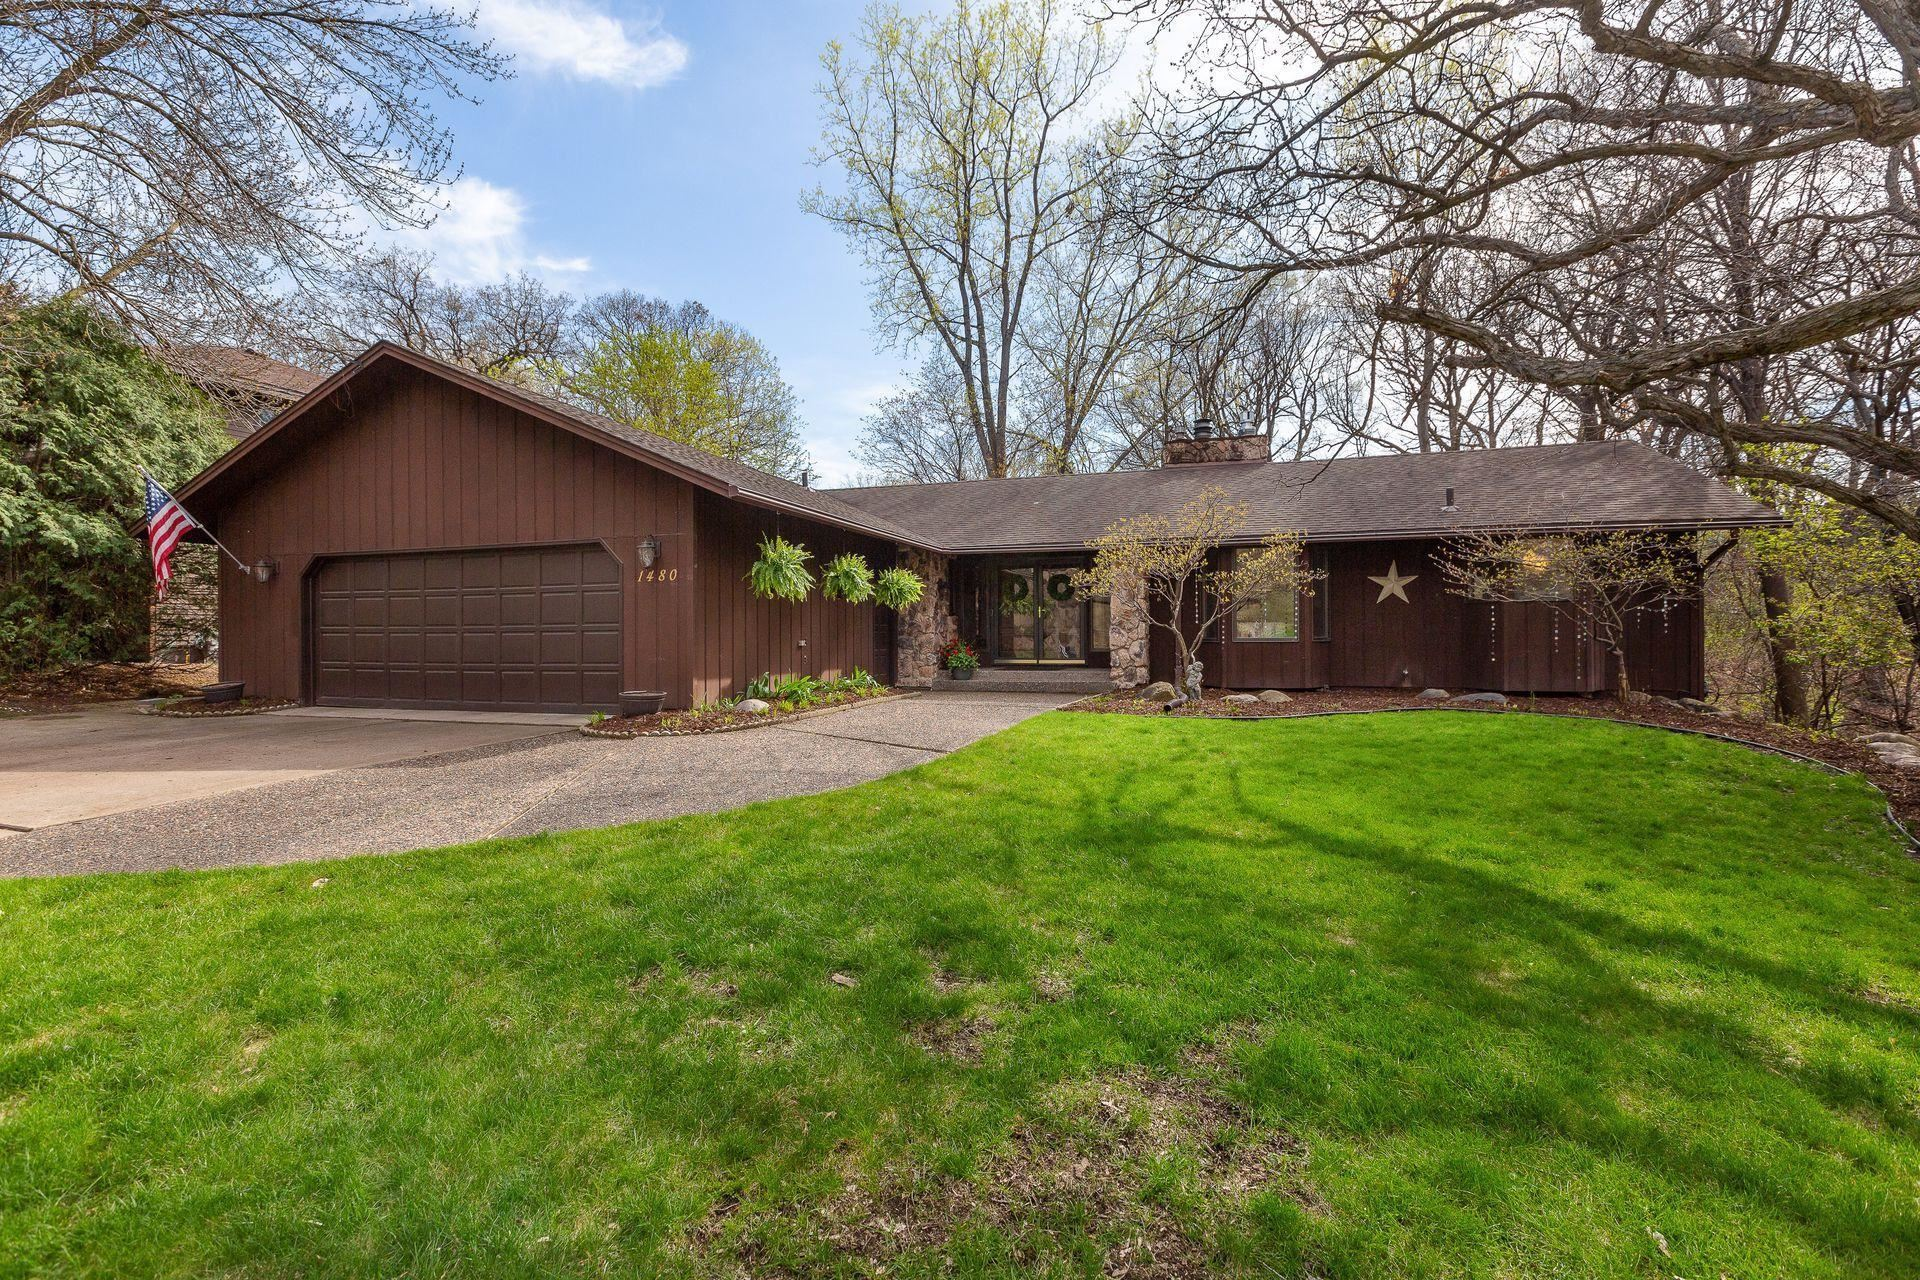 1480 N Danube Road, Fridley, MN 55432 - MLS#: 5750590